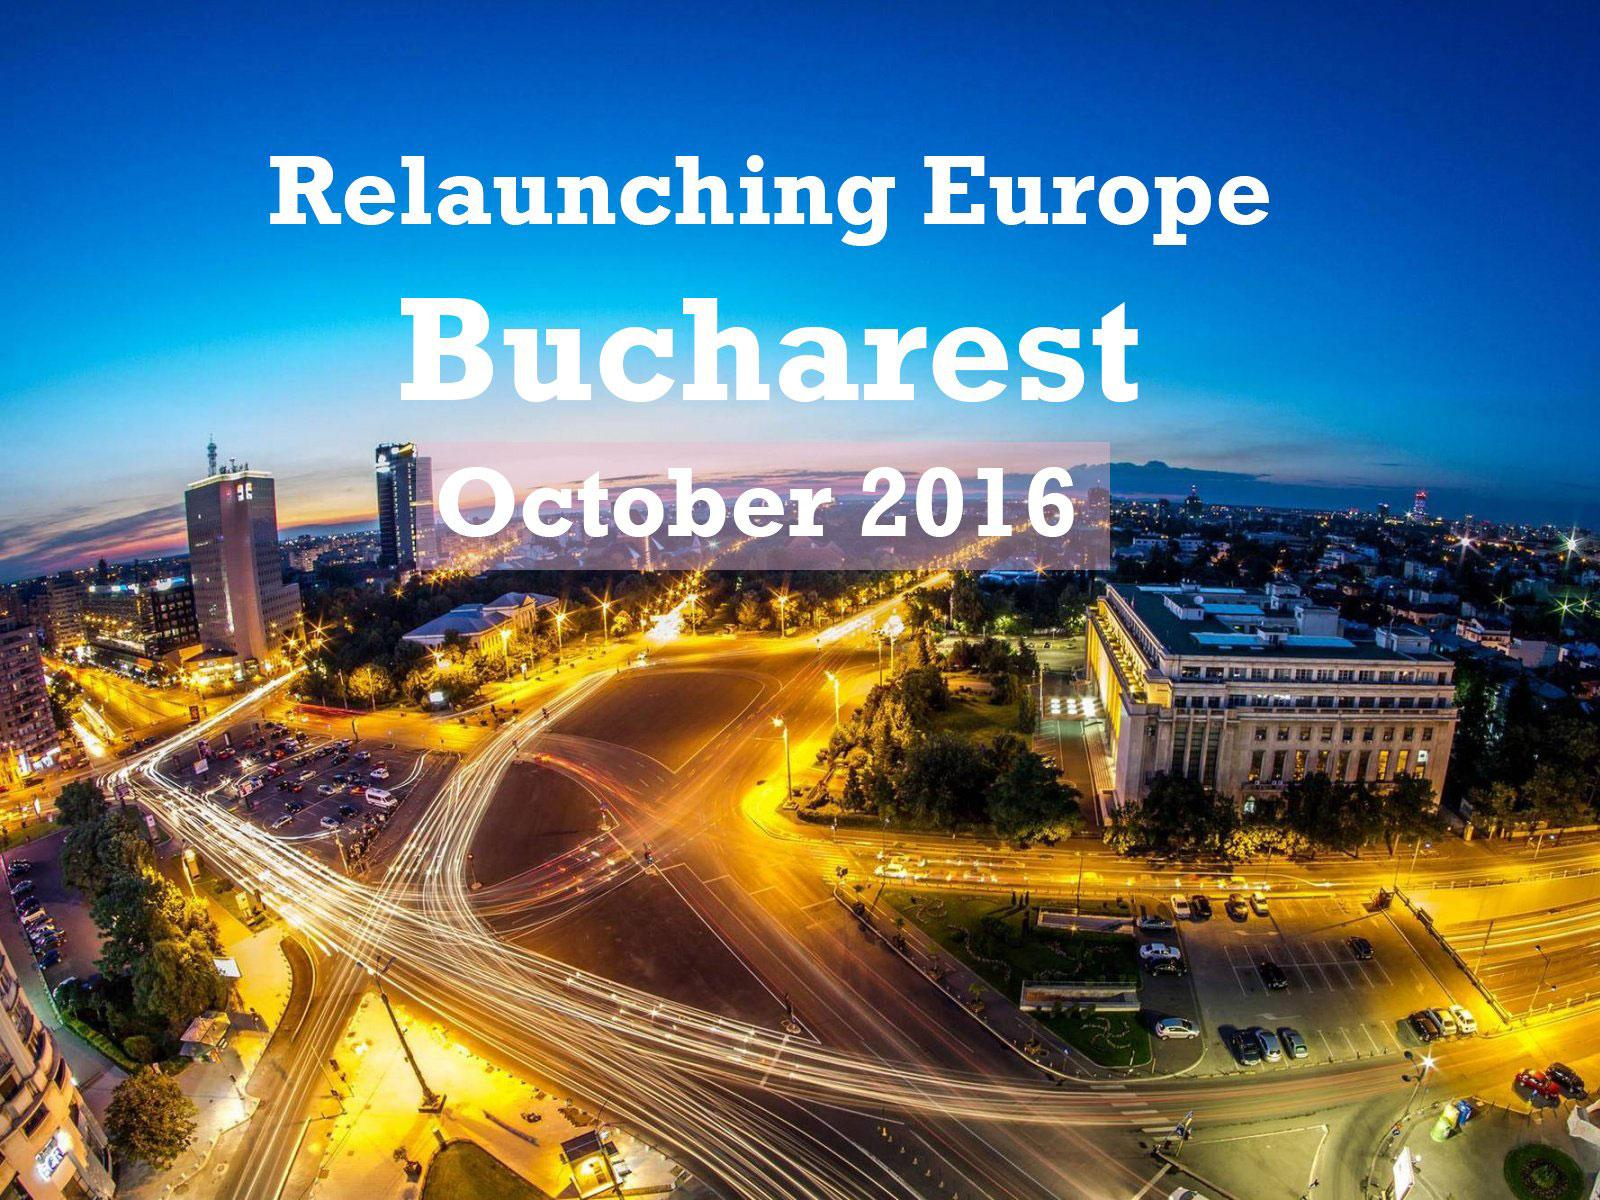 Relaunching Europe event in Bucharest on 21 October 2016.